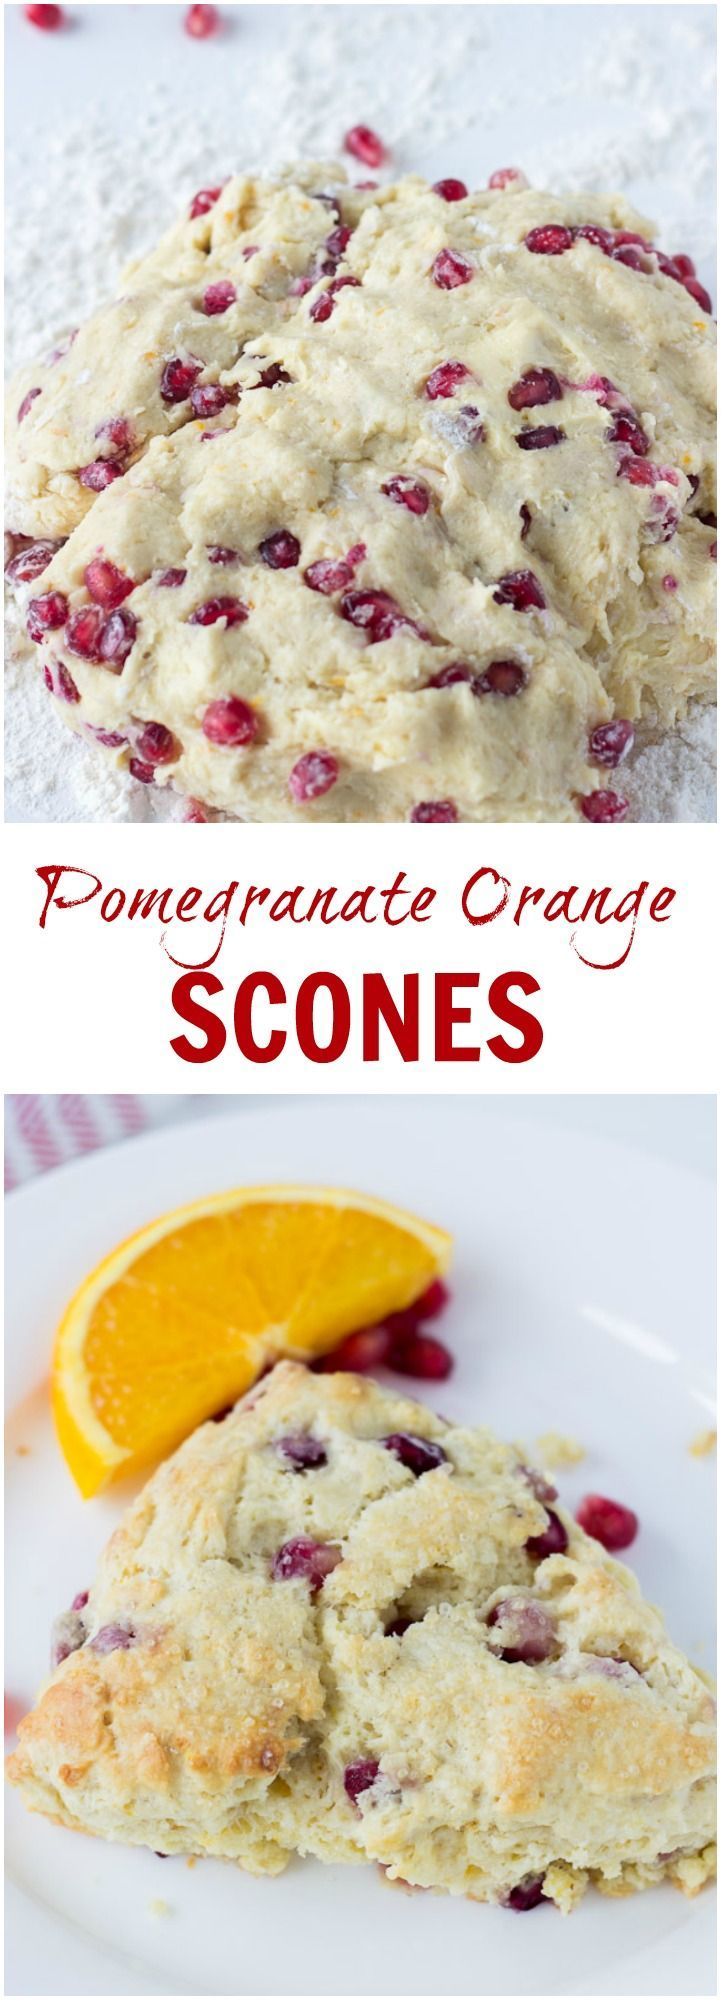 Buttery, soft and sweet Pomegranate Orange Scones with winter flavors.                                                                                                                                                                                 More